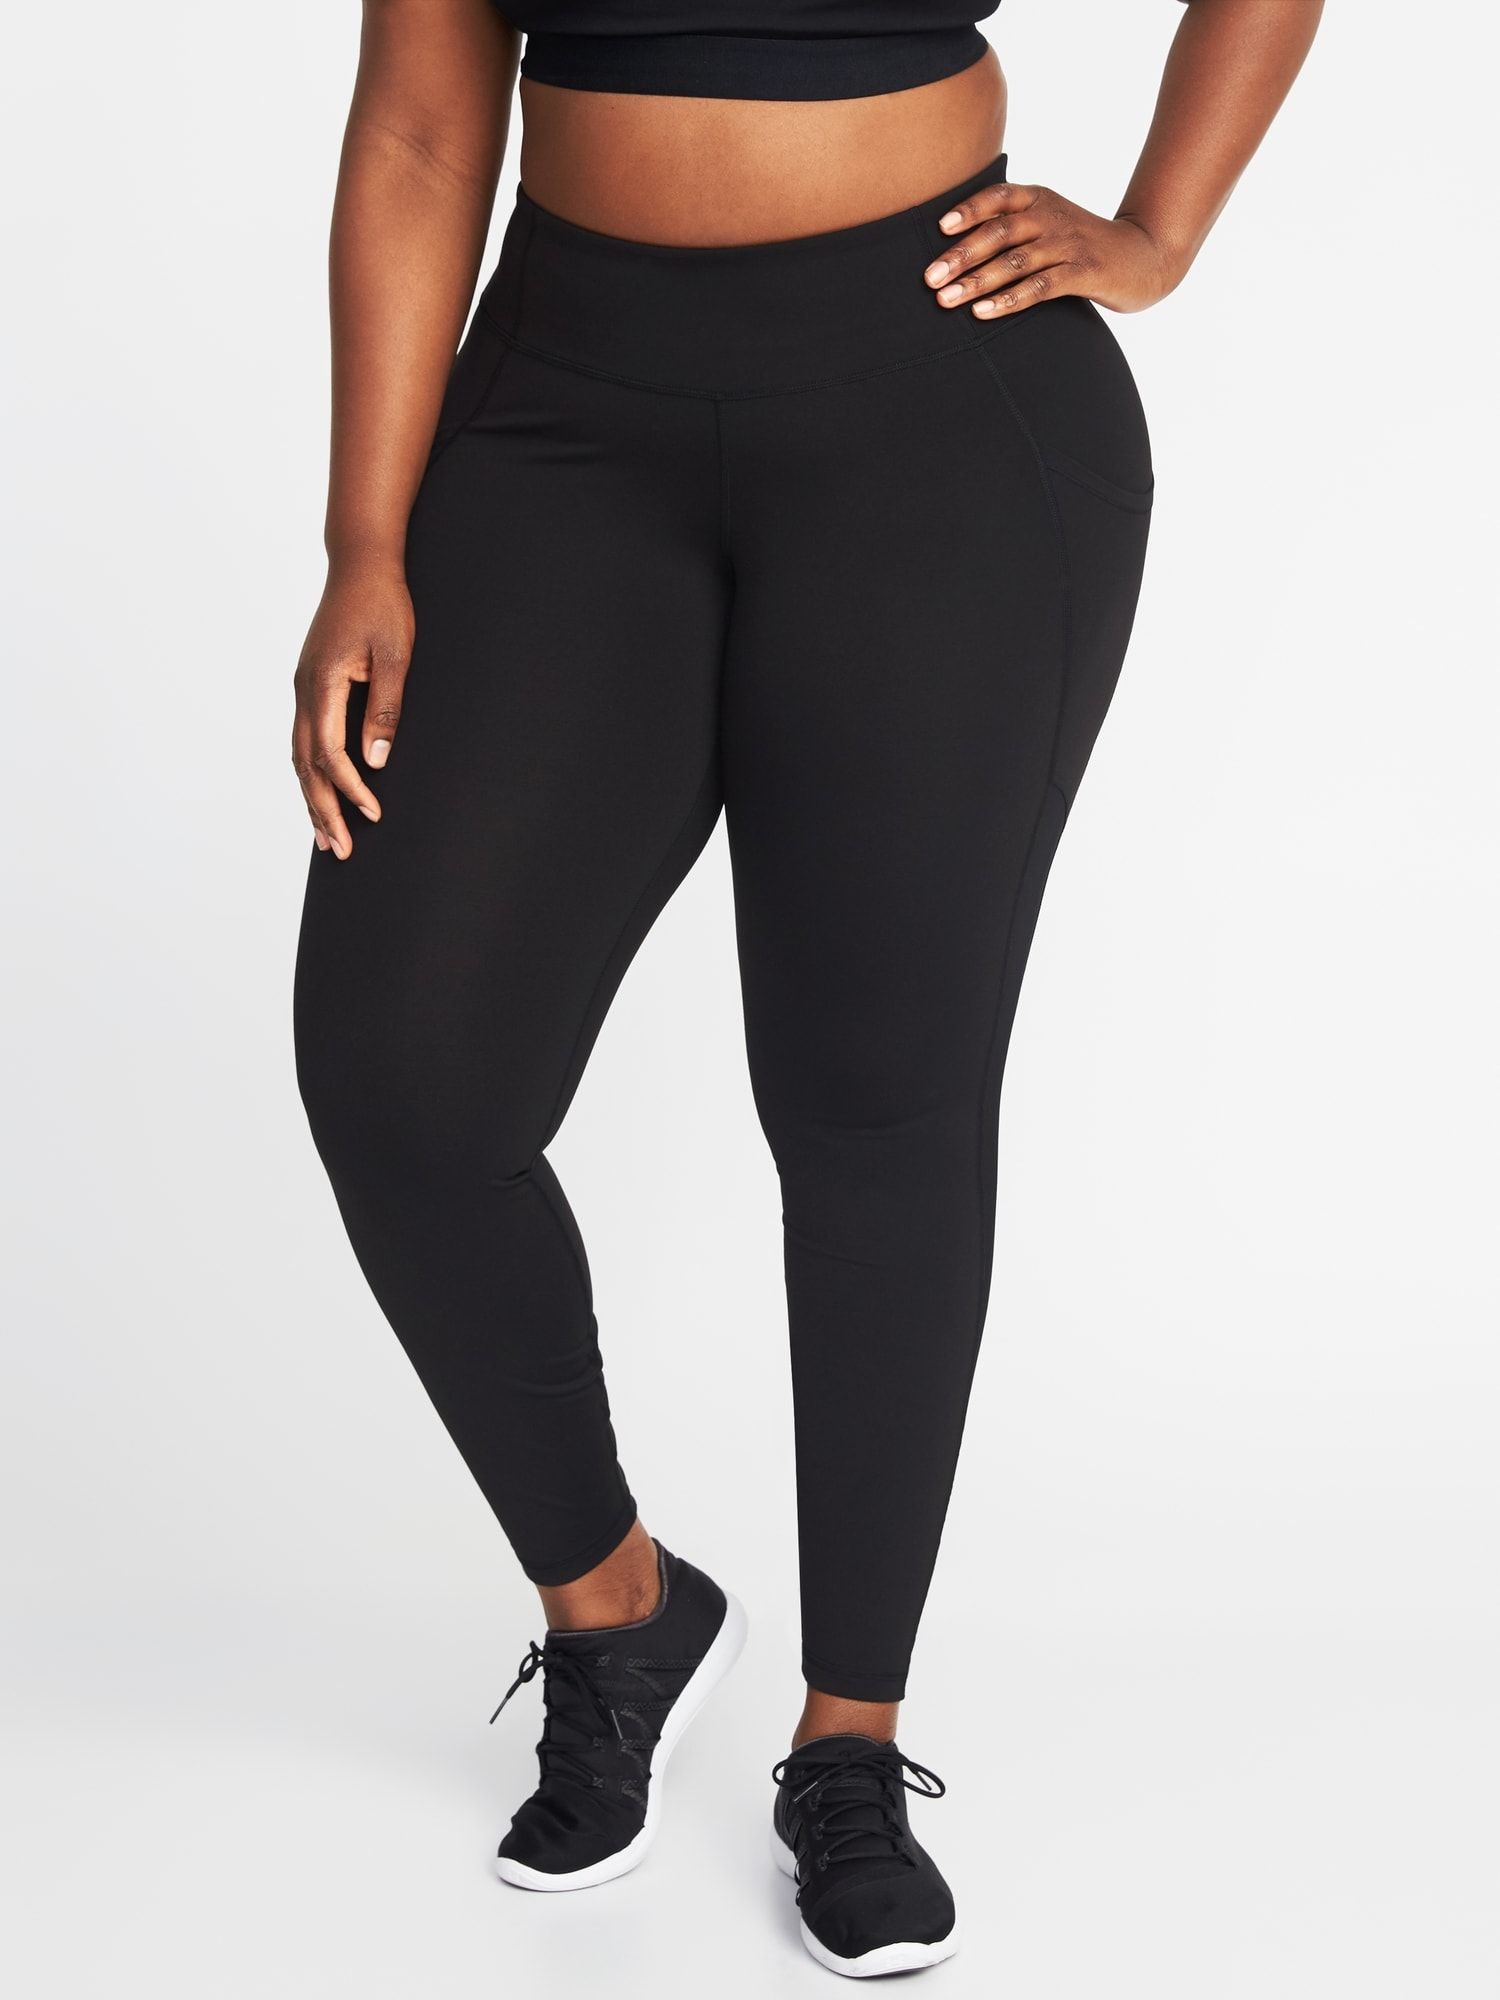 a3184ee657509f product Plus Size Workout, Welt Pocket, Old Navy, Workout Leggings, Mesh,